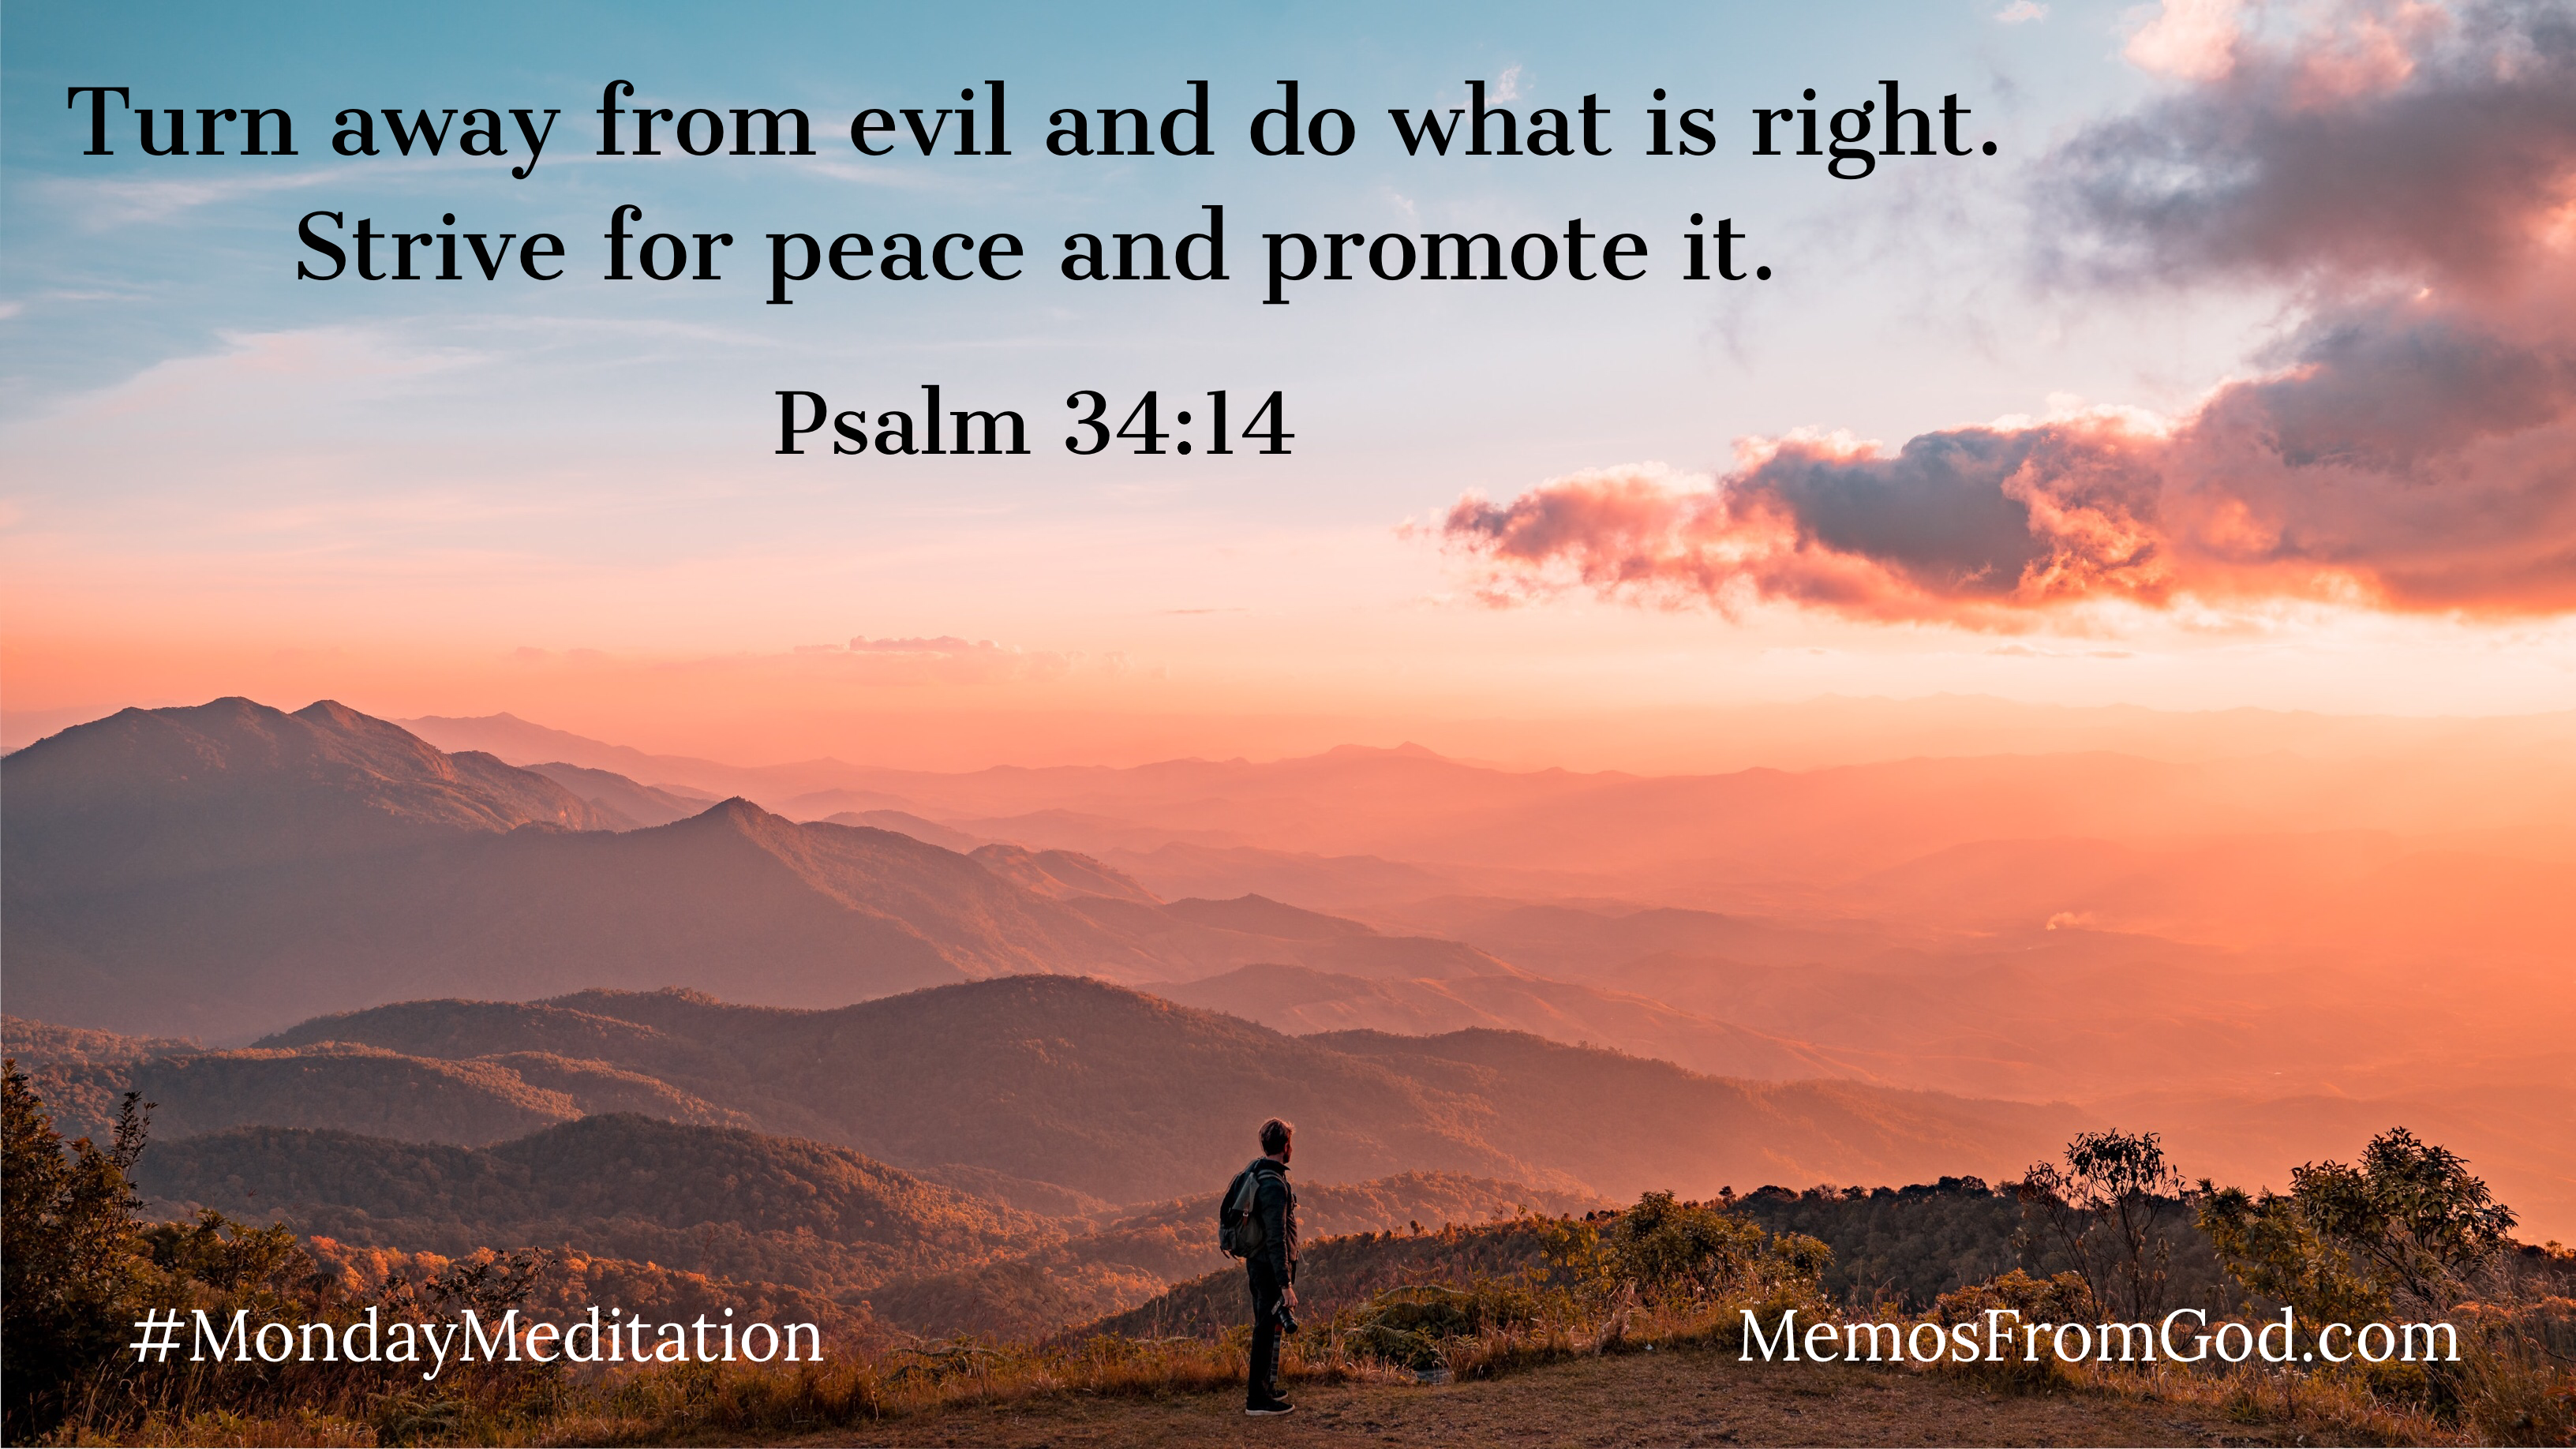 A man with a backpack looking out over a range of mountains and clouds that are tinted a peach colour by the setting sun. Caption: Turn away from evil and do what is right. Strive for peace and promote it. Psalm 34:14